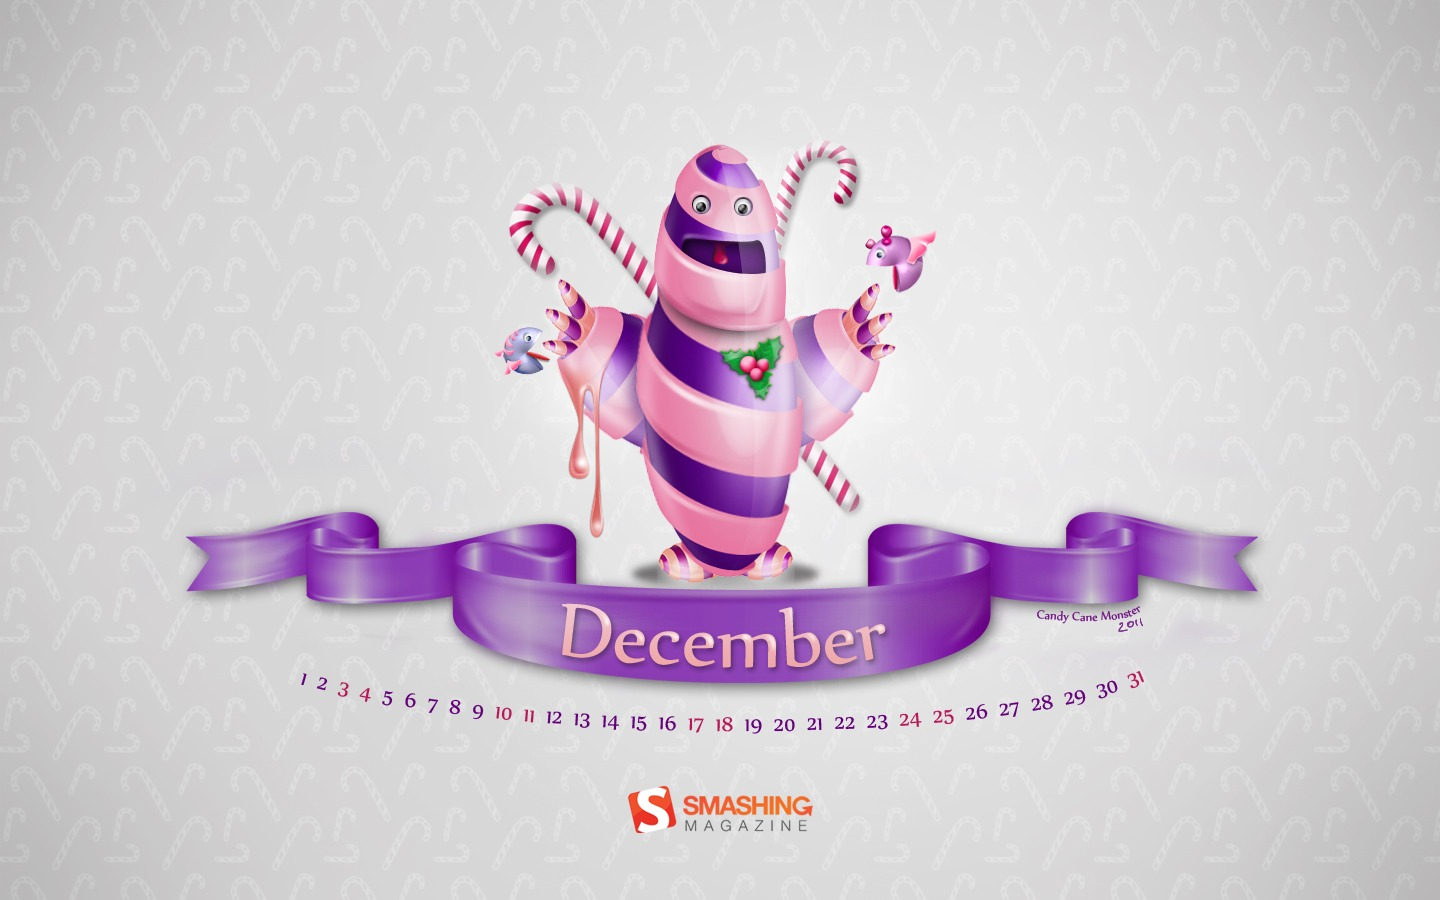 In January Calendar Wallpaper 31318